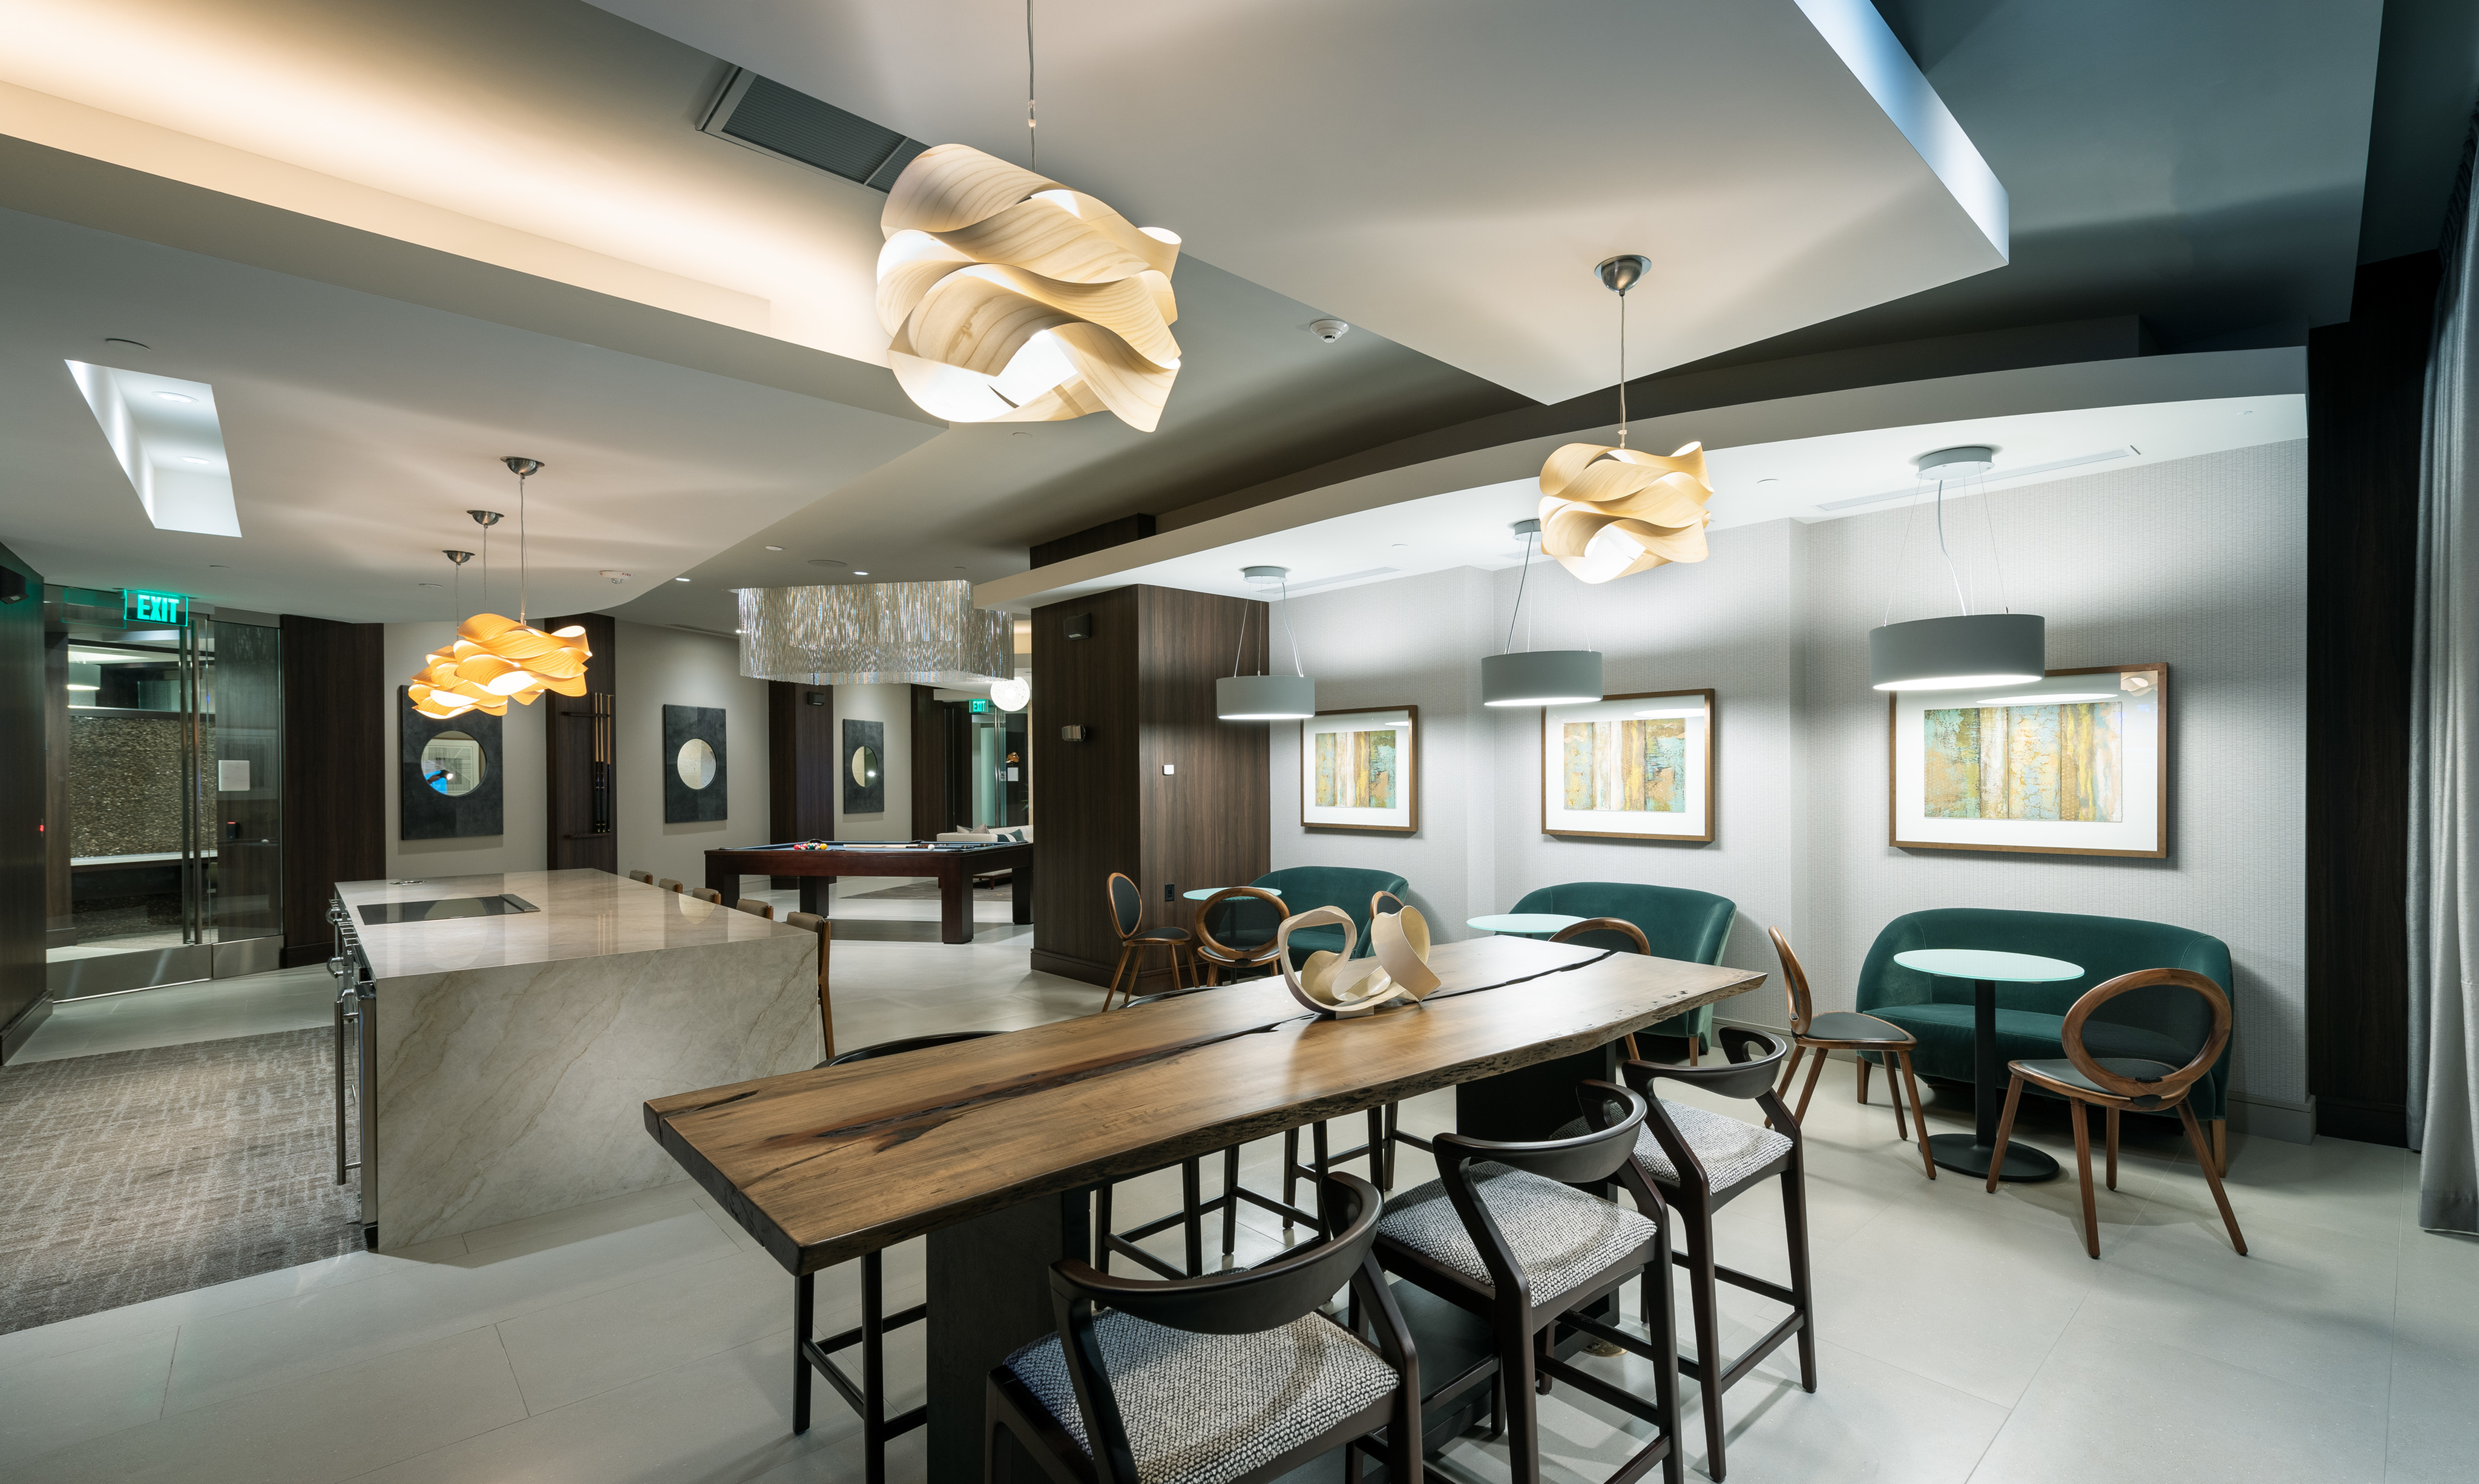 Resident clubhouse and catering kitchen at Hanover Broadway